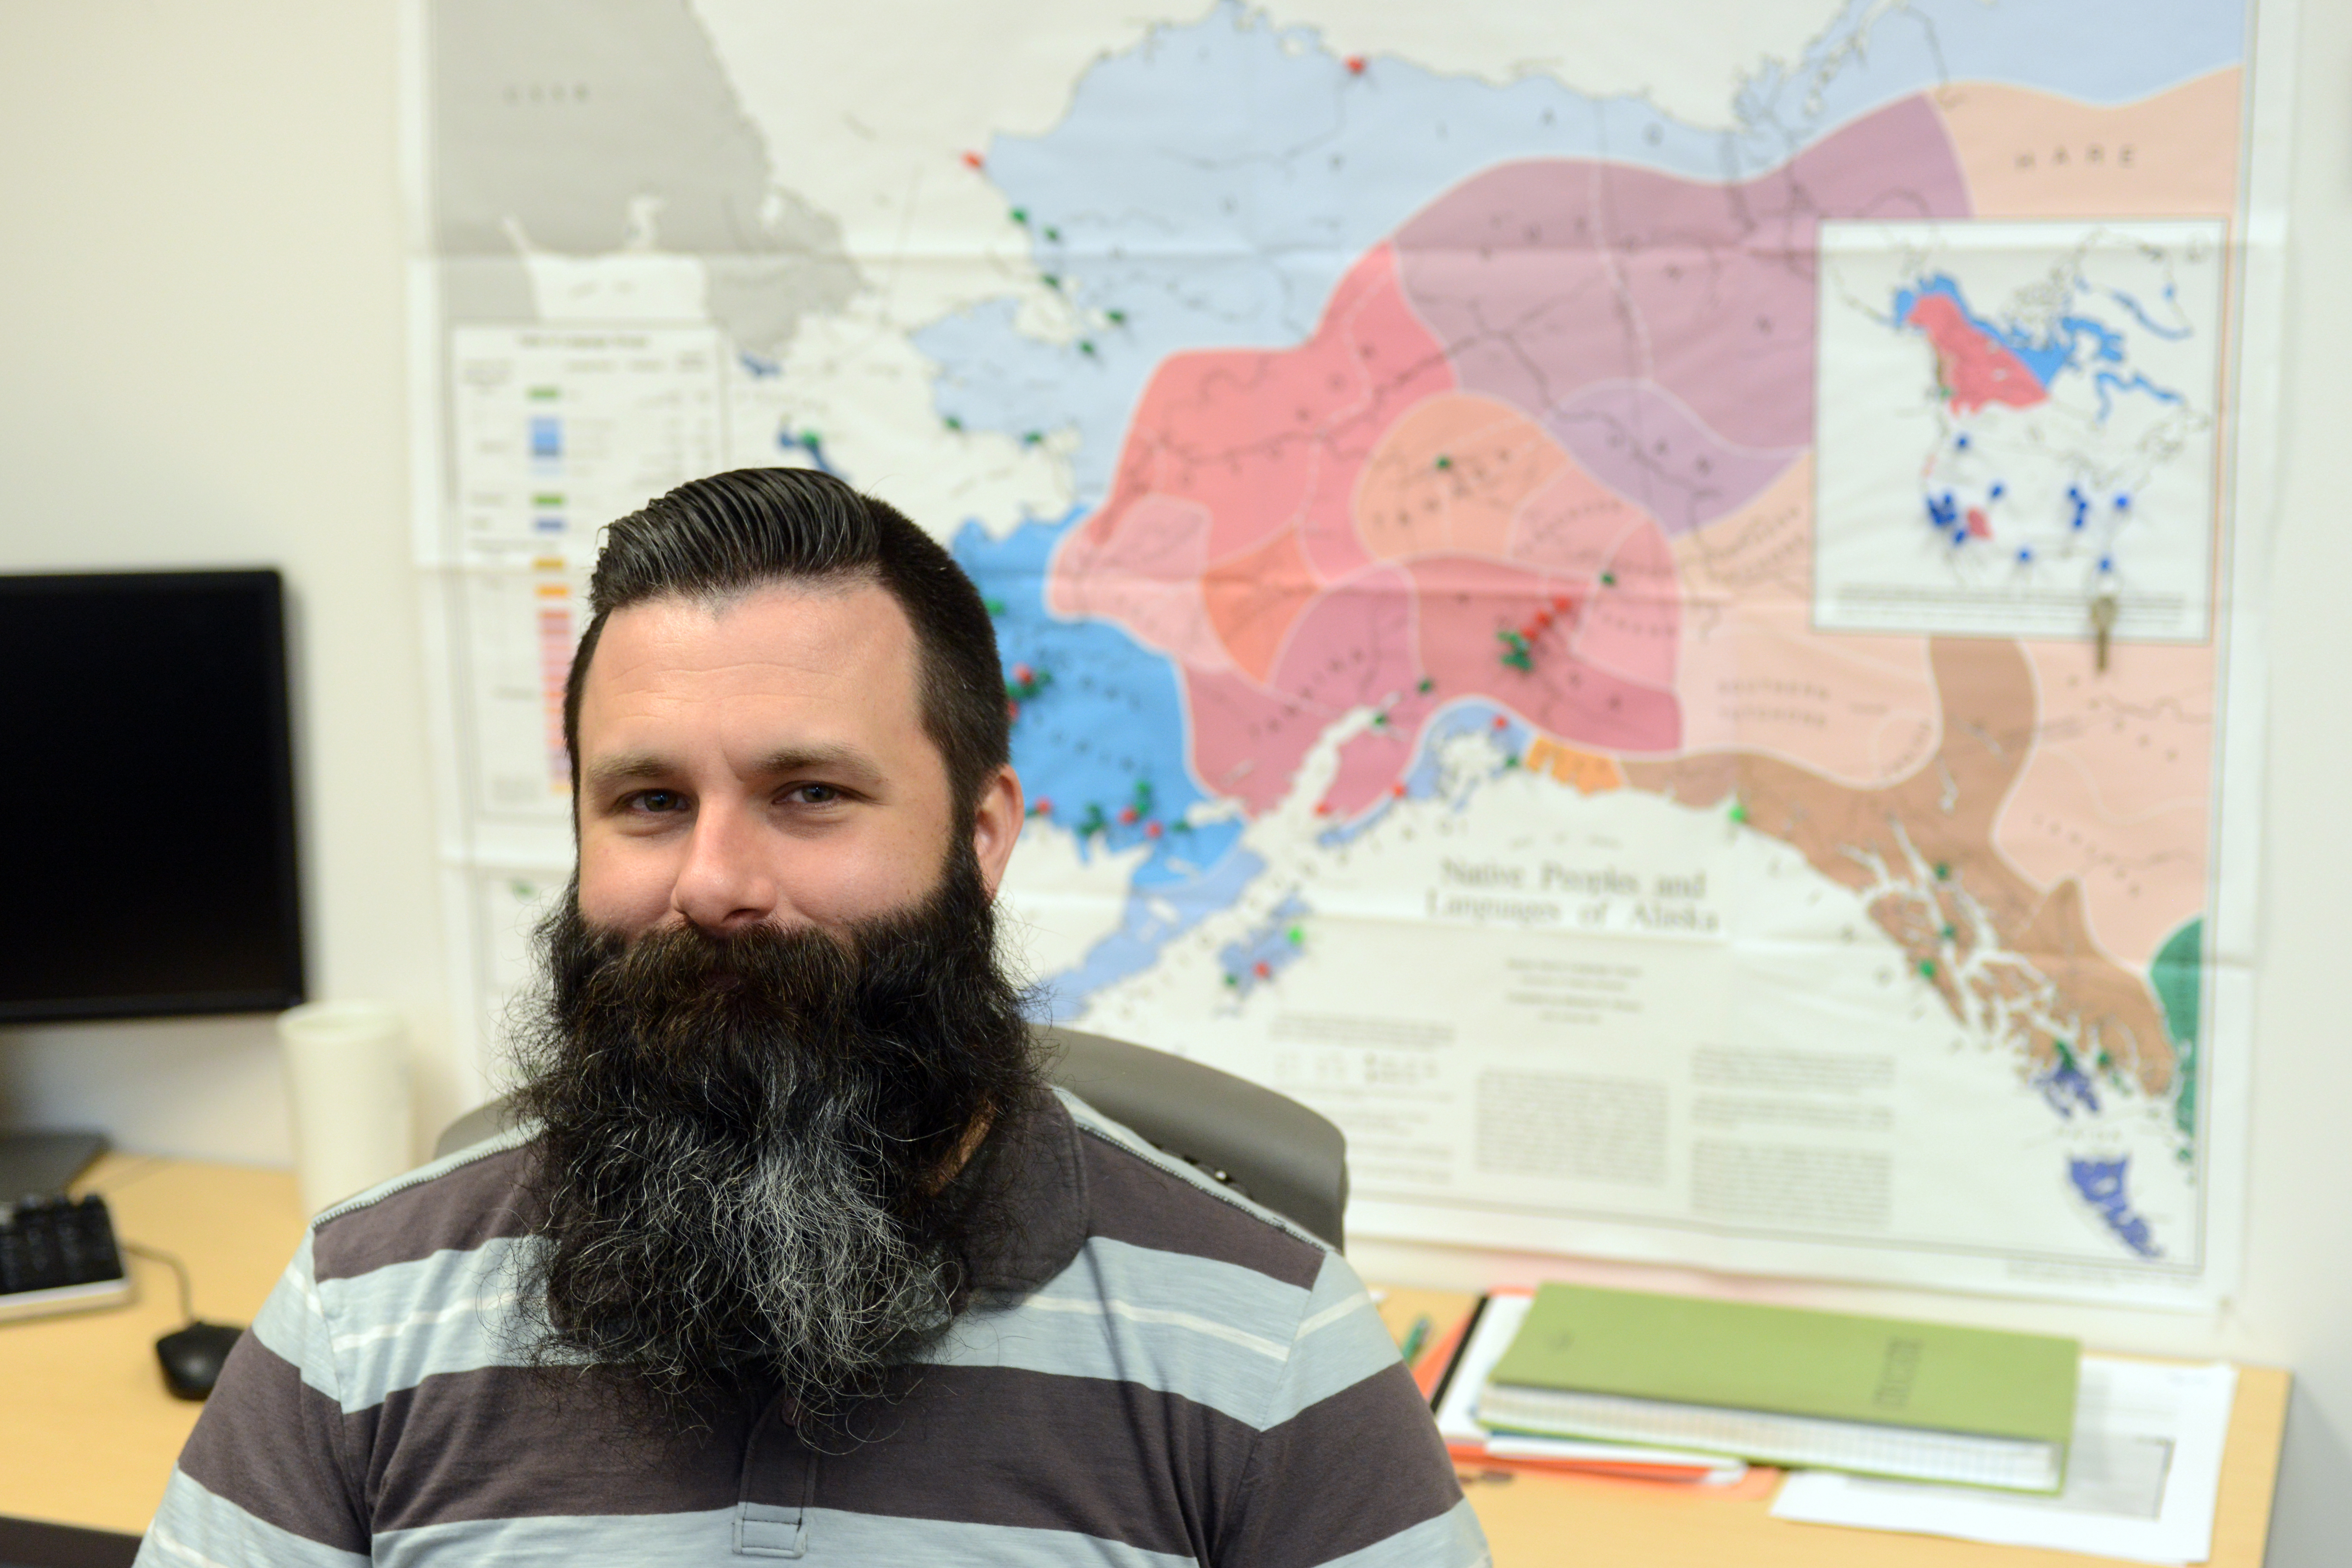 AJ Salkoski is a Senior Program Manager at Alaska Native Tribal Health Consortium. Salkoski led a team to eight villages in southwest Alaska to conduct air quality tests and home improvements. Push pins mark all the places throughout Alaska he has visited in the course of his work. He was photographed on Wednesday, July 26, 2017, at the Diplomacy Building on the Alaska Native Health Campus. (Erik Hill / Alaska Dispatch News)